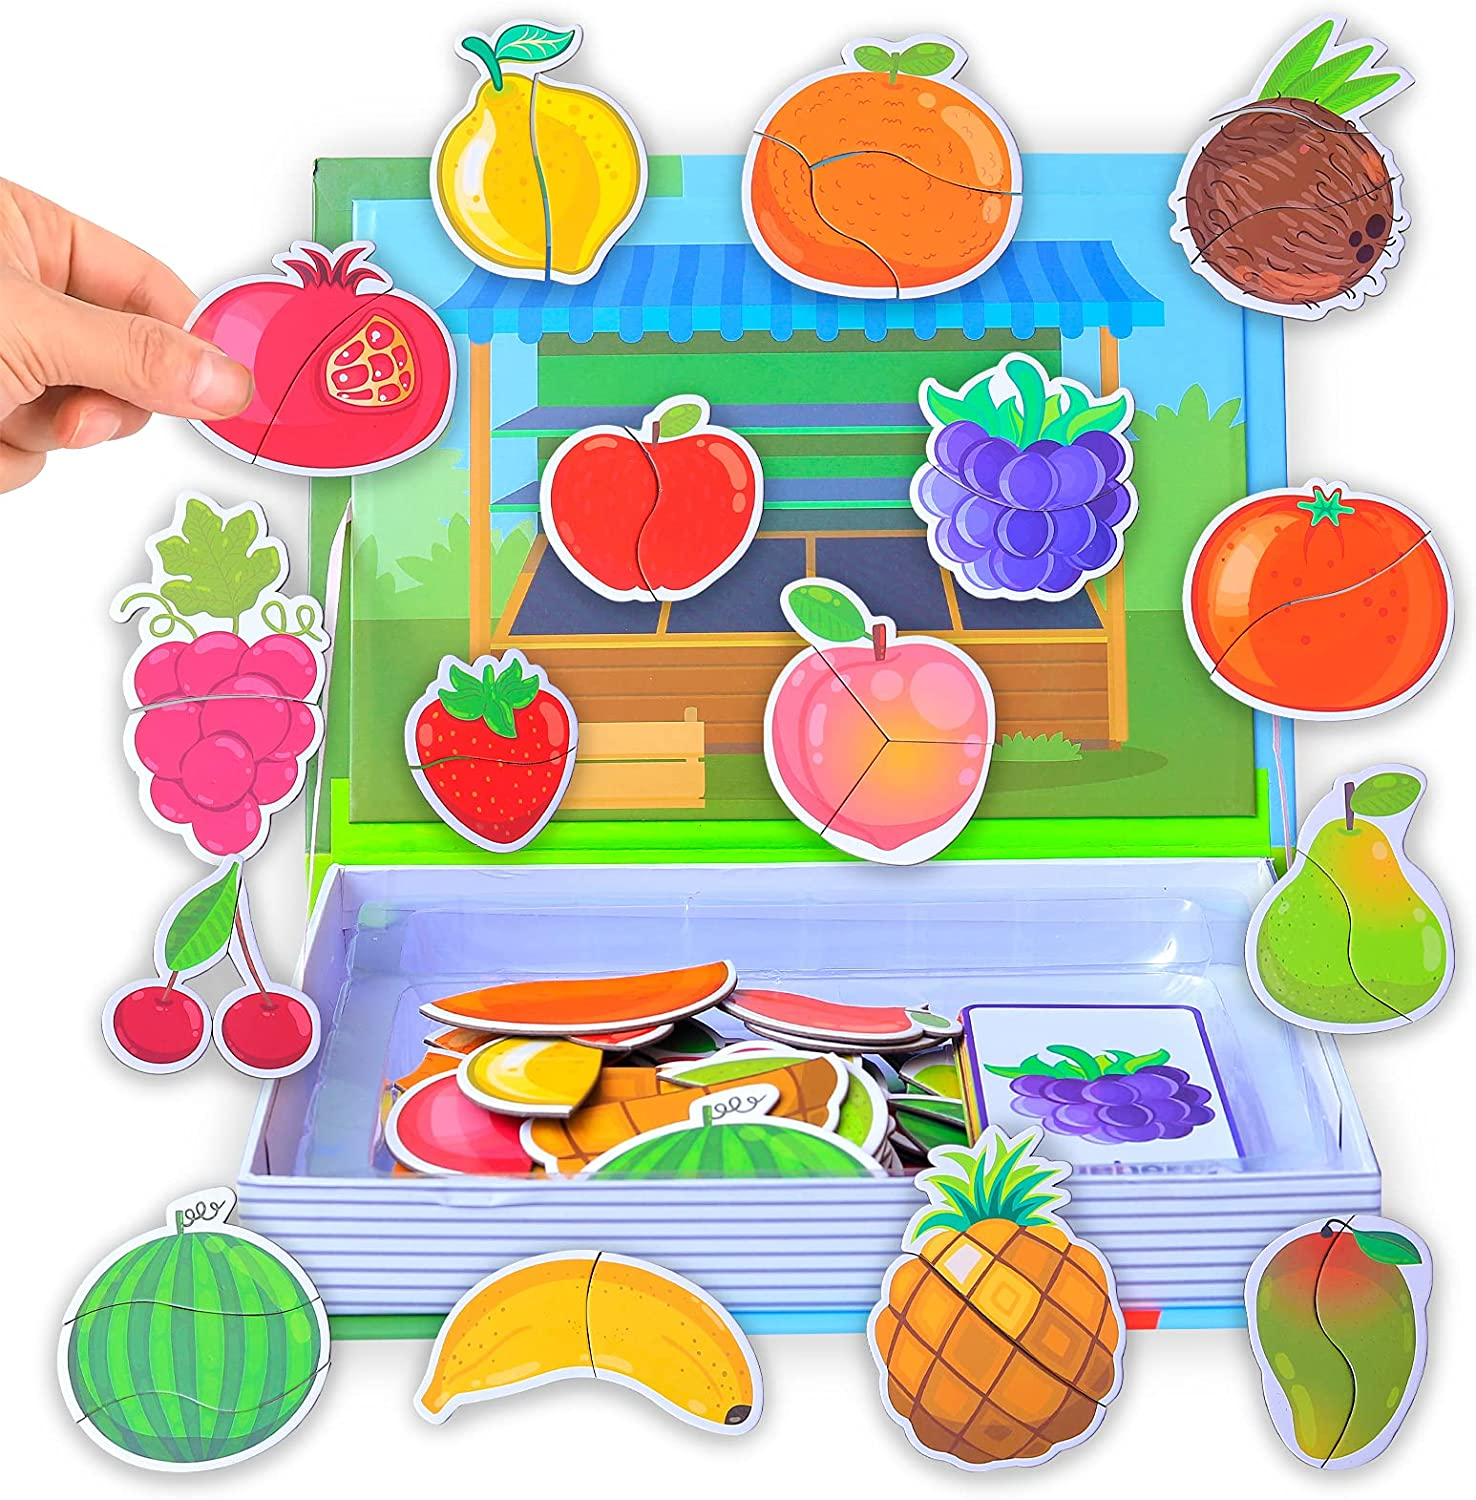 JITEBTI Fruit Magnetic Puzzles Play Scene 36 Piece to Help Children Recognize 16 Kinds of Food and Fruits,Easy to Carry Kids Magnets Travel Games, Fruit Toys for Kids 3-5 Birthday Gift